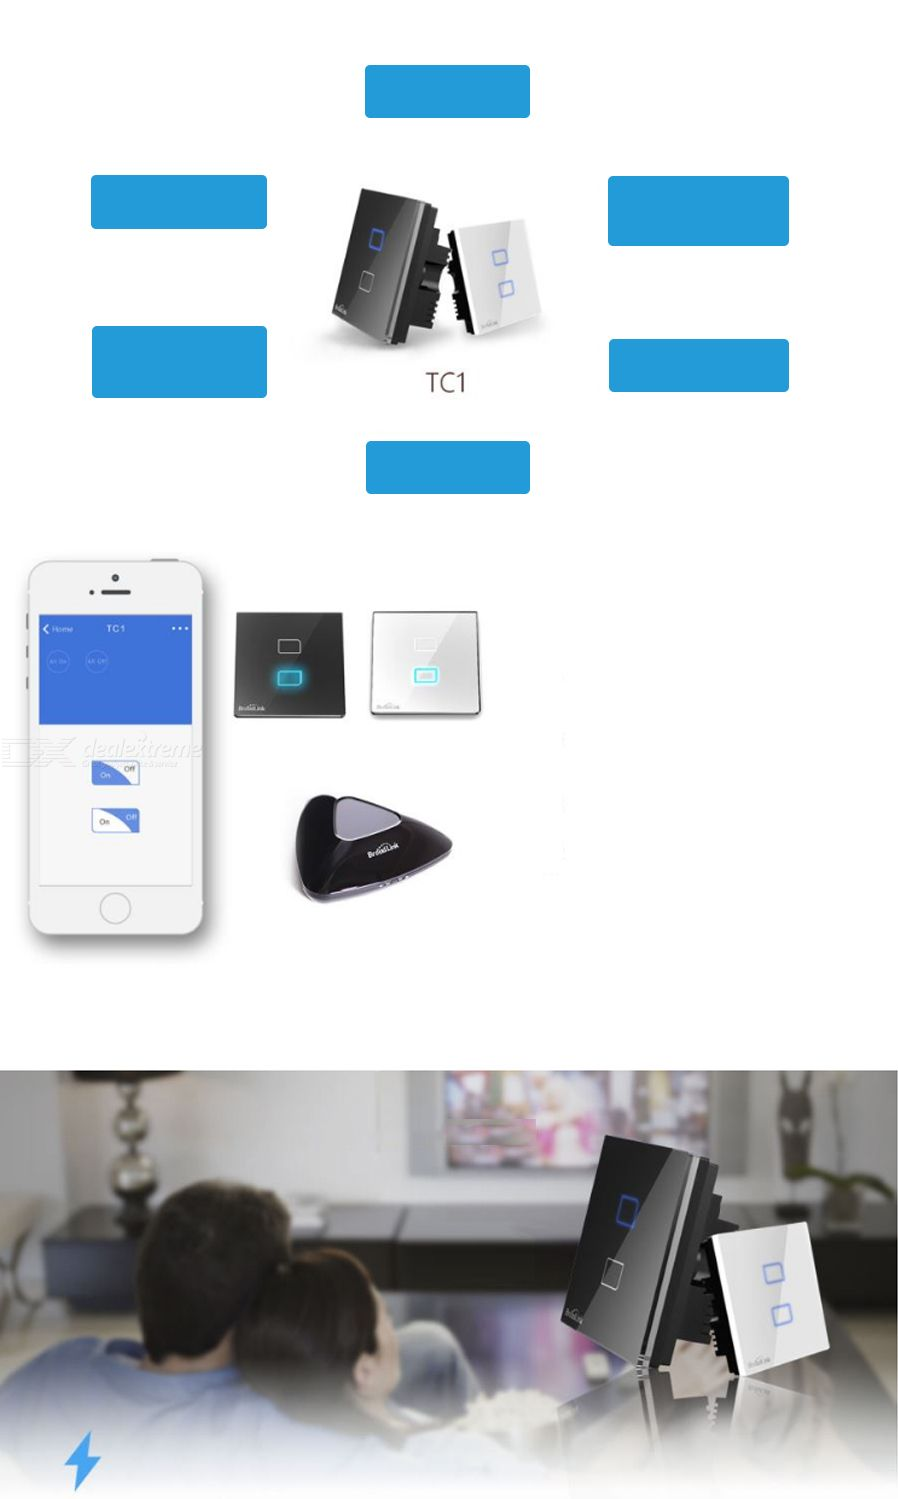 BroadLink TC2 CN/UK Smart Home Wall Light Switch by IOS, Android